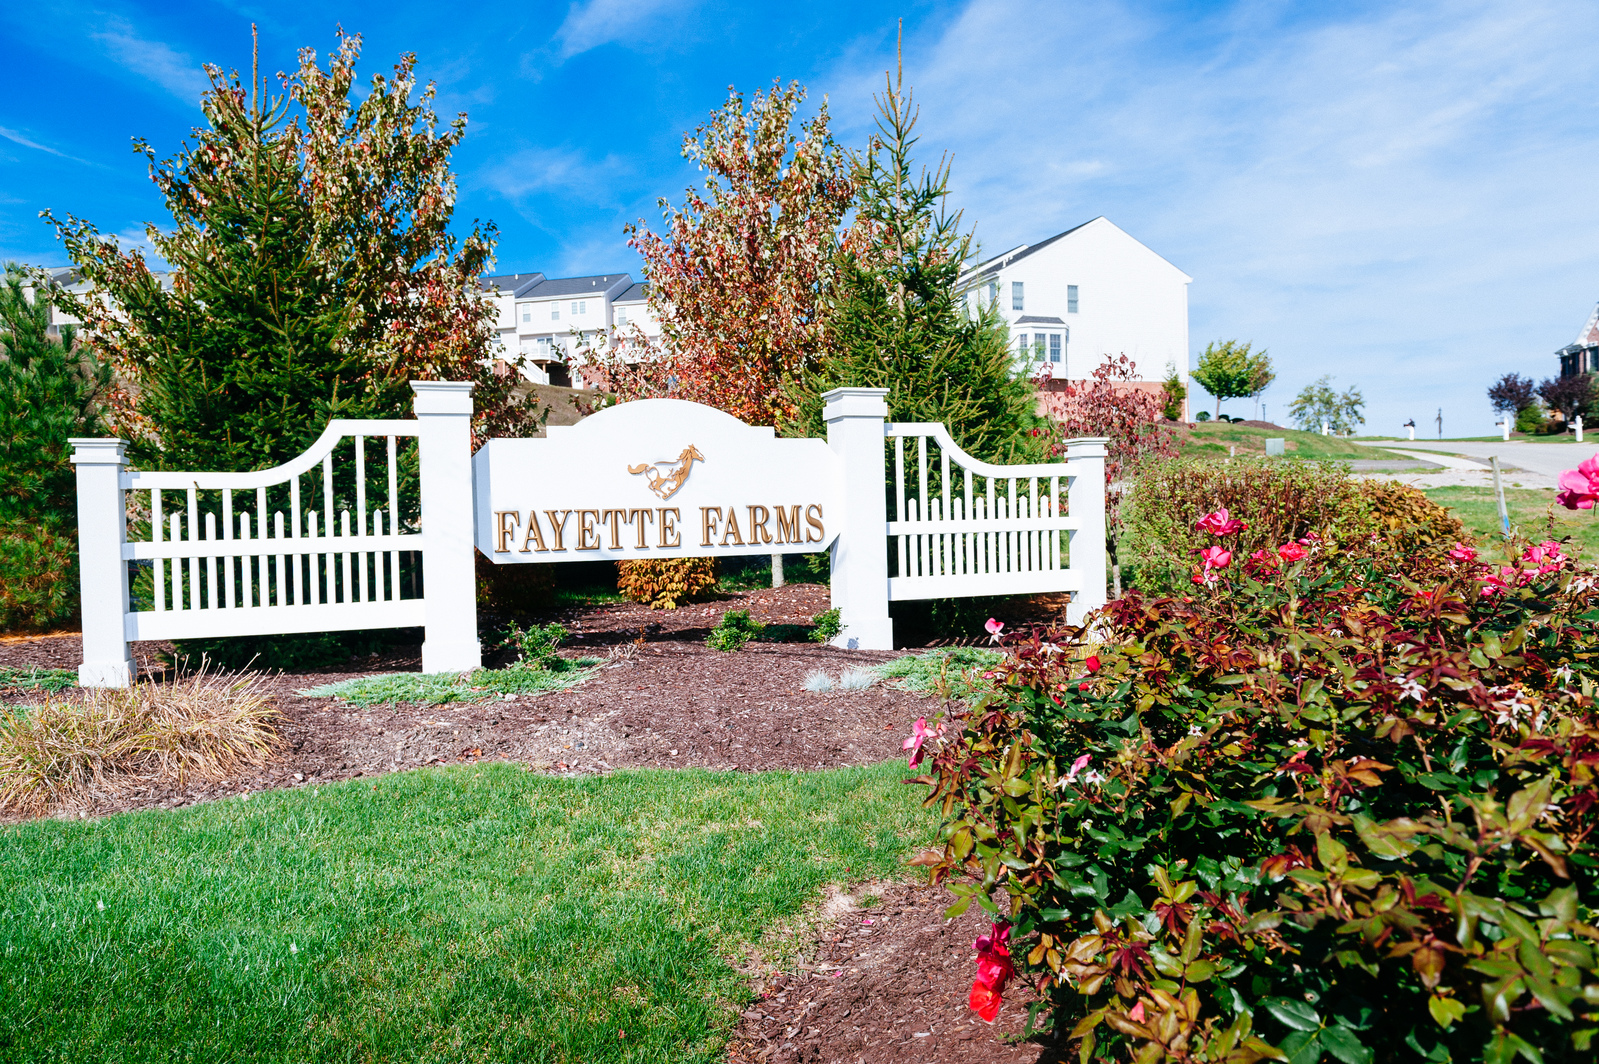 Fayette Farms Single Family Homes